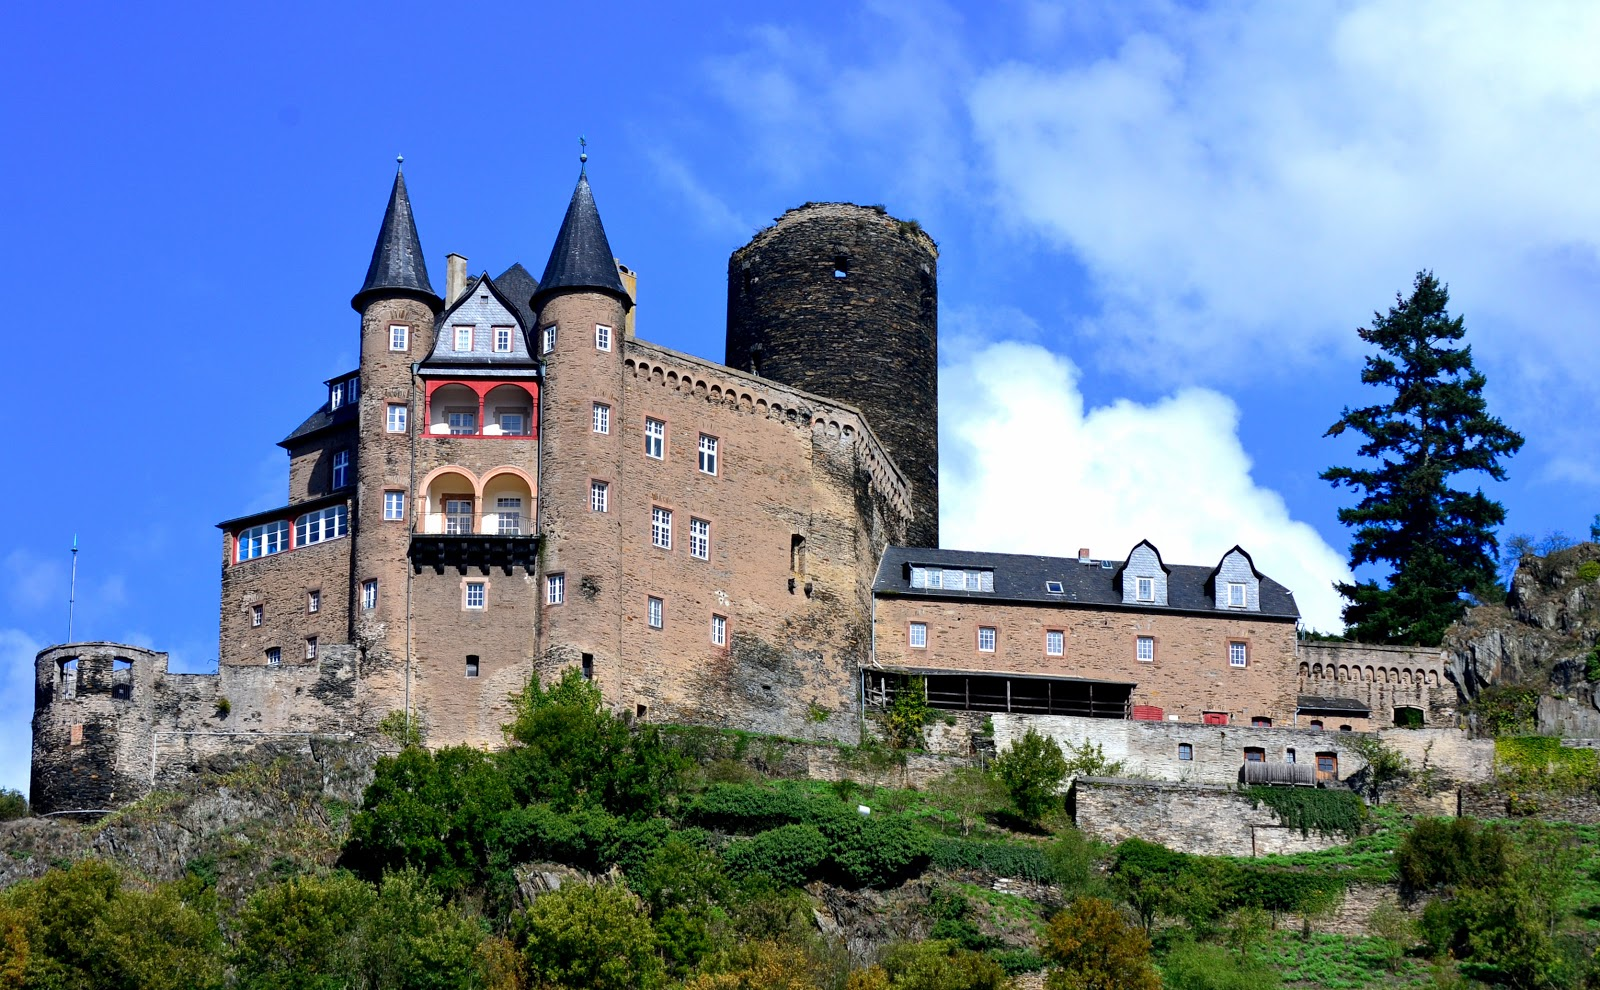 Burg Katz or Cat Castle was restored to its grandeur in the early 20th century. Today, it is a private residence.